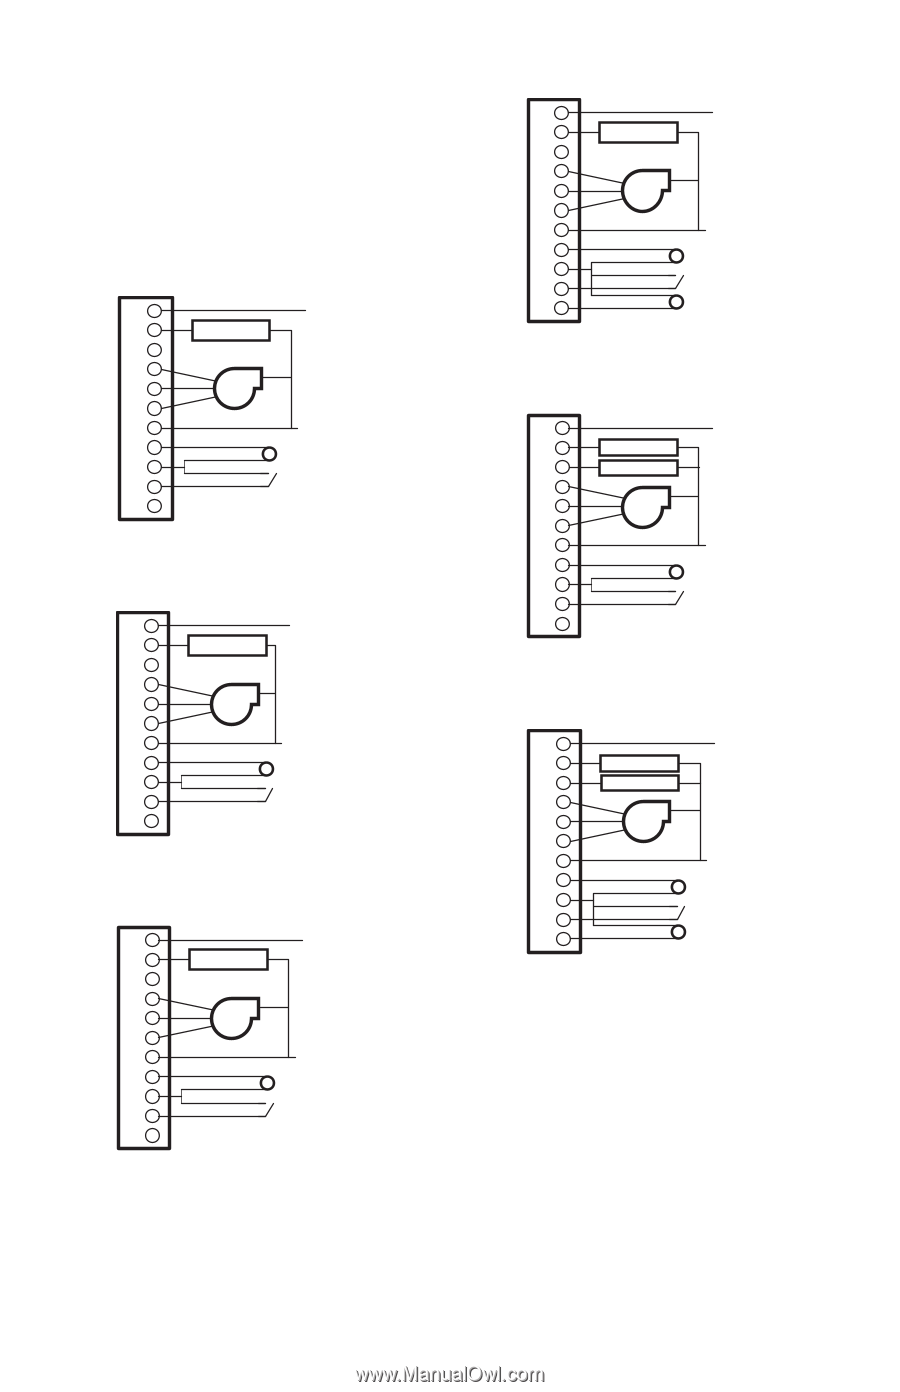 wiring diagram for honeywell tb6575a1000